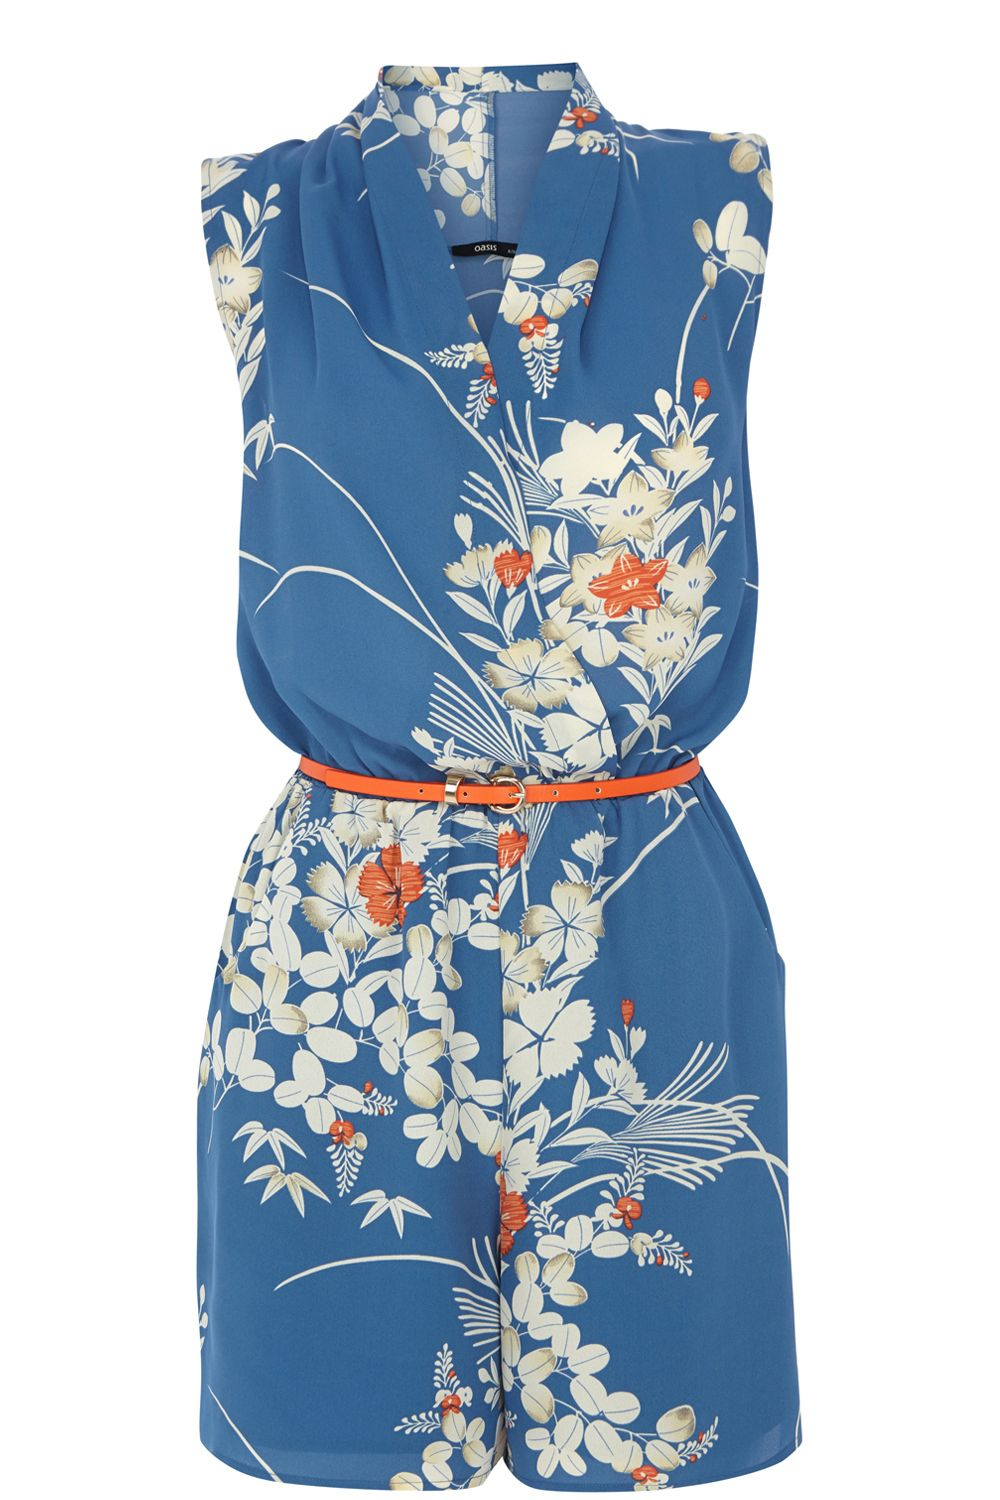 Japanese oriental playsuit